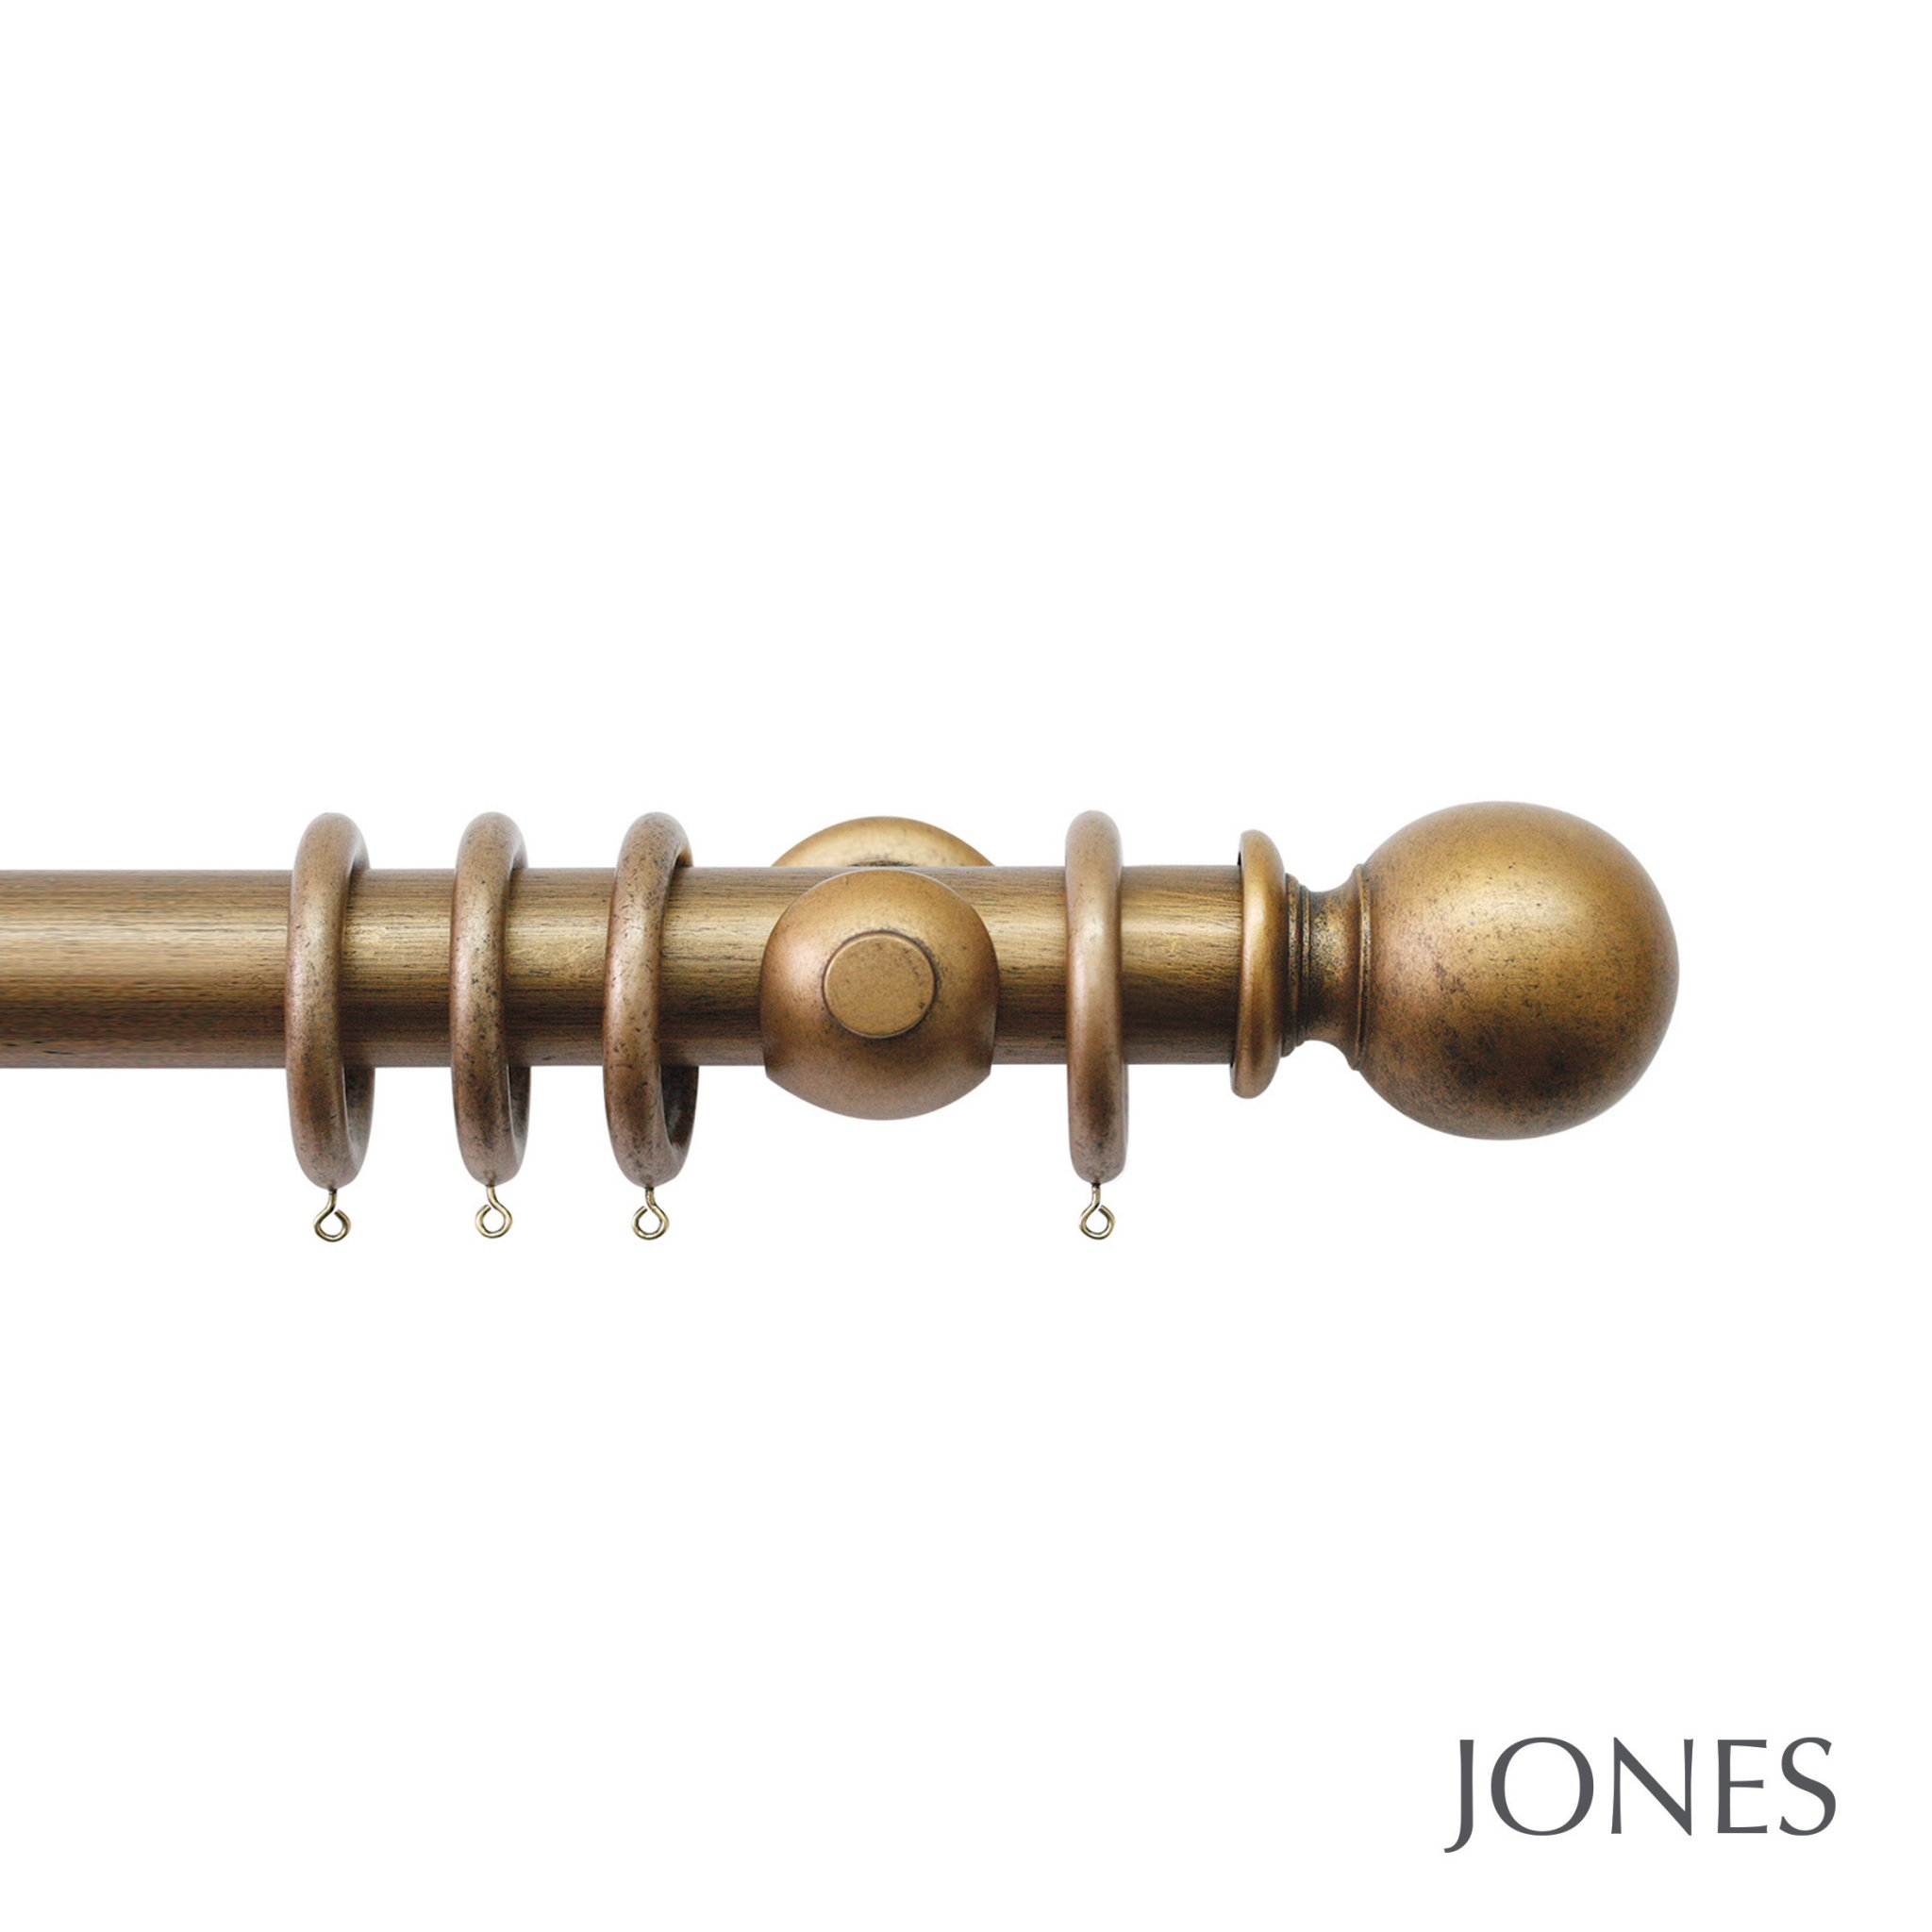 Jones Florentine Handcrafted 50mm Wooden Curtain Pole Ball